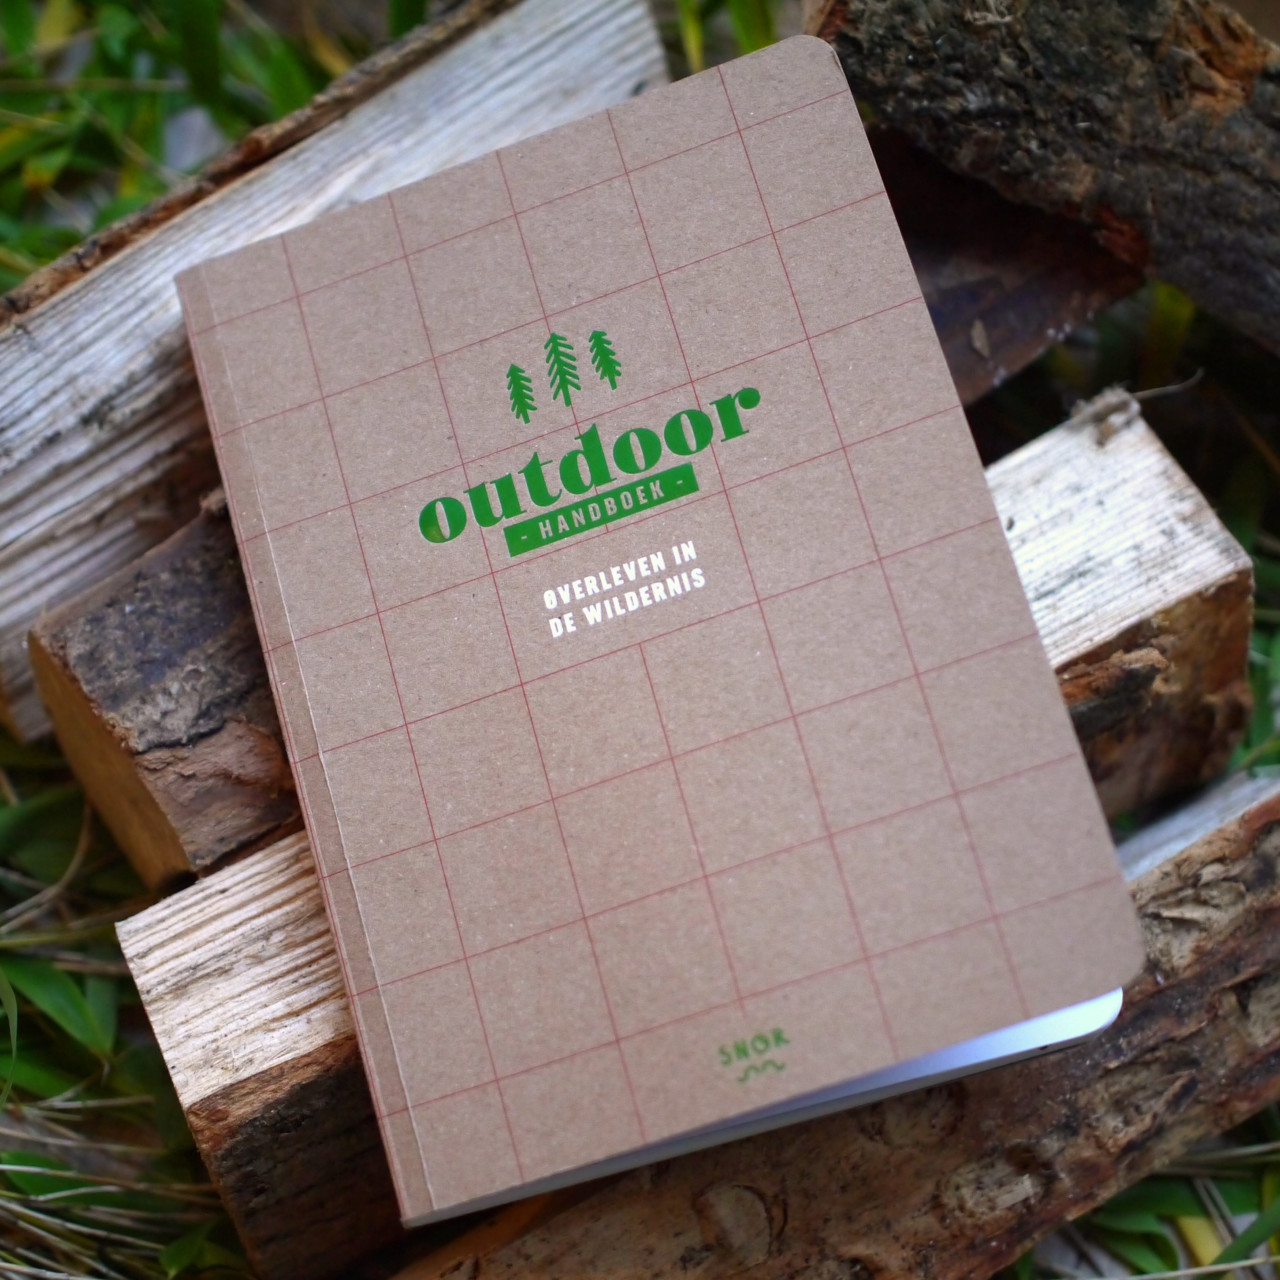 Outdoor survival handboek